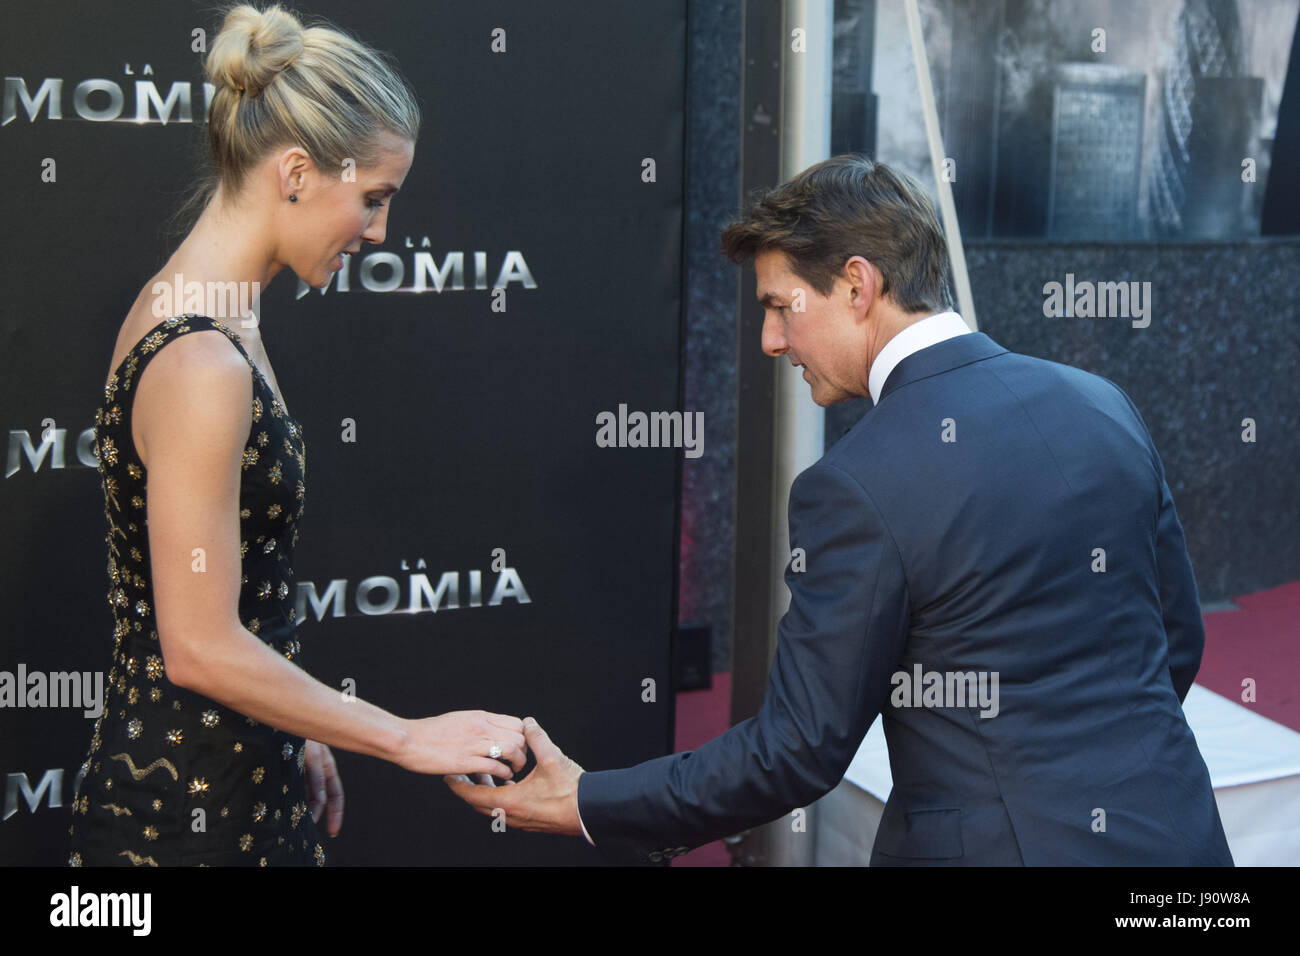 Madrid, Espagne. 29 mai, 2017. Annabelle Wallis et Tom Cruise assister à 'La momie' premiere Callao Photo Stock